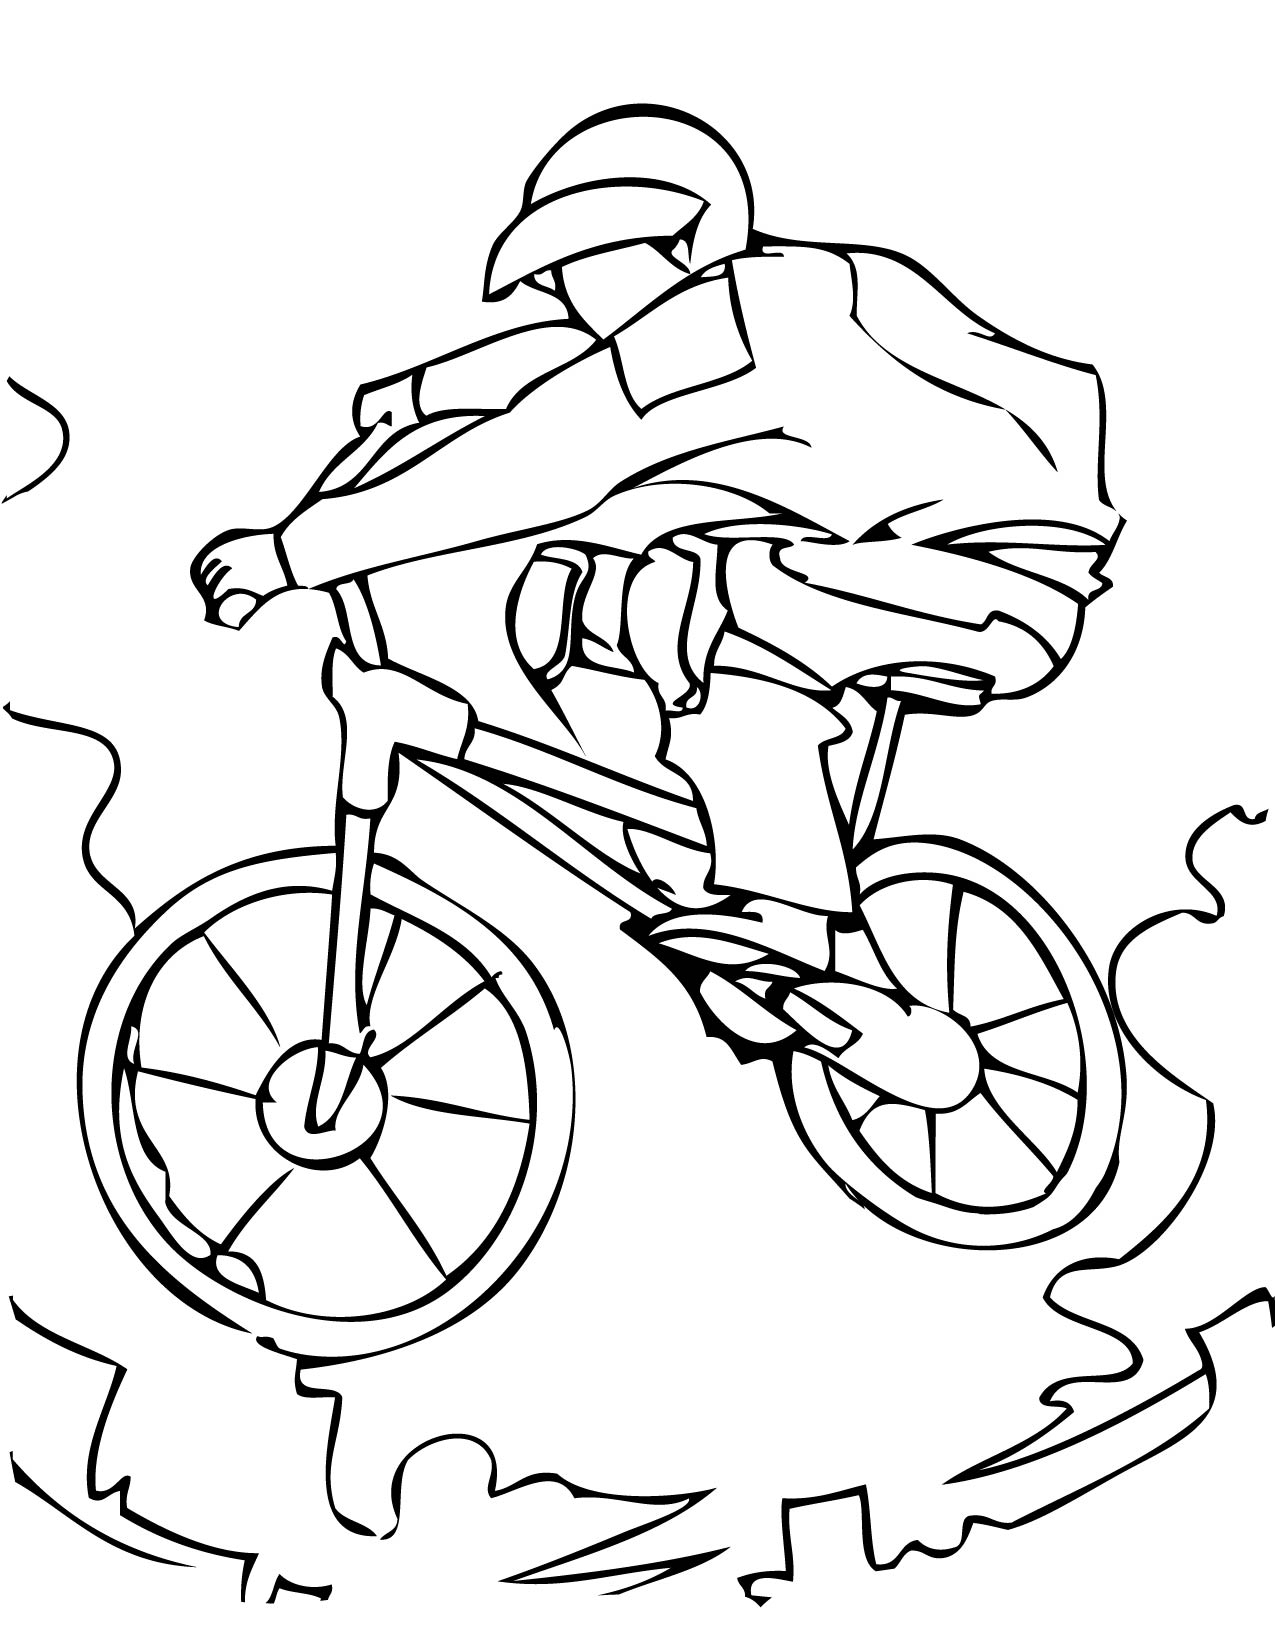 BMX Bike Coloring Page Letscoloringpages Nice